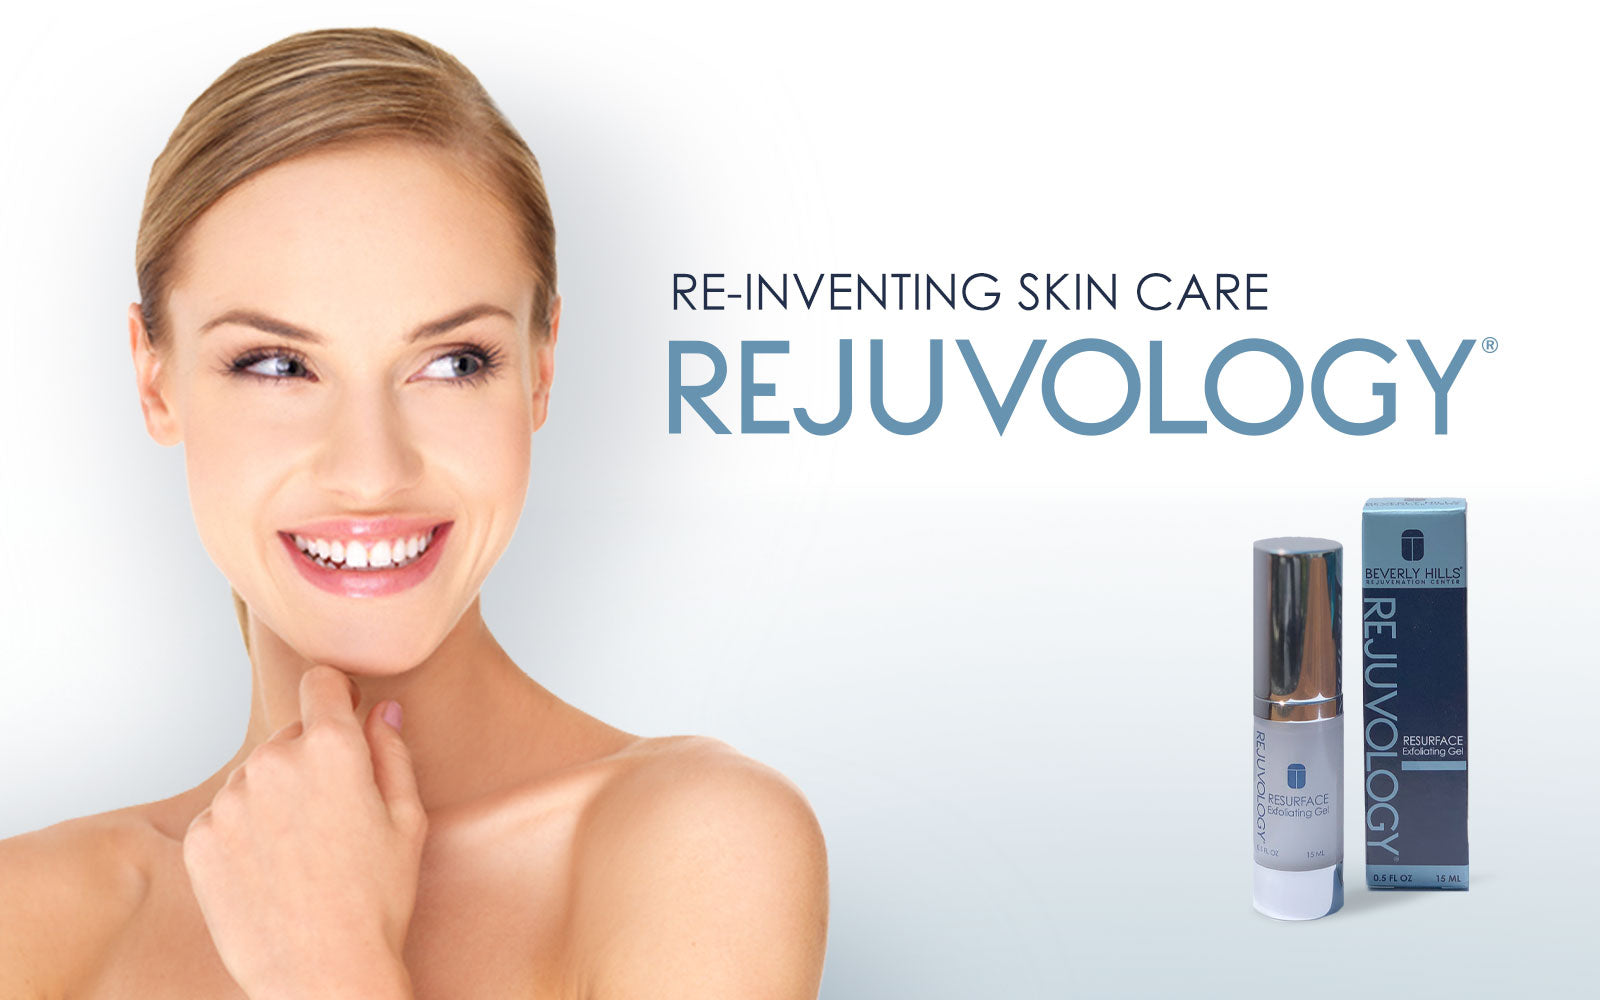 Re-inventing Skin Care Rejuvology